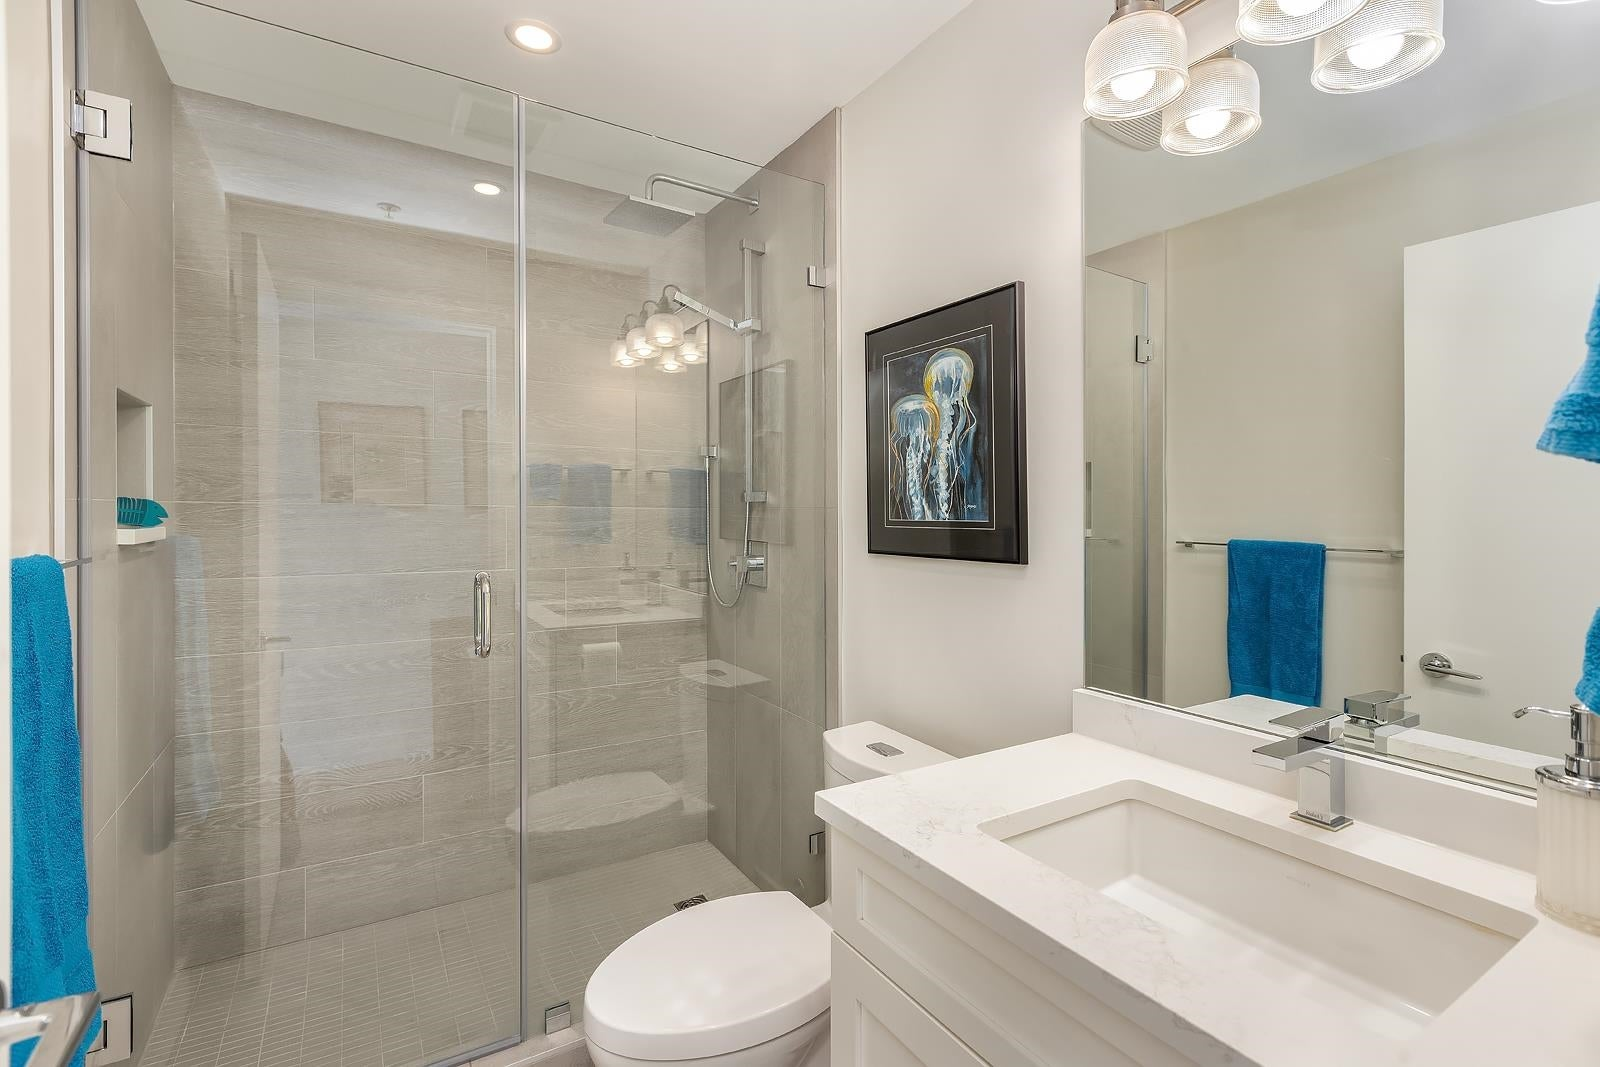 1601 121 W 16TH STREET - Central Lonsdale Apartment/Condo for sale, 2 Bedrooms (R2617103) - #27